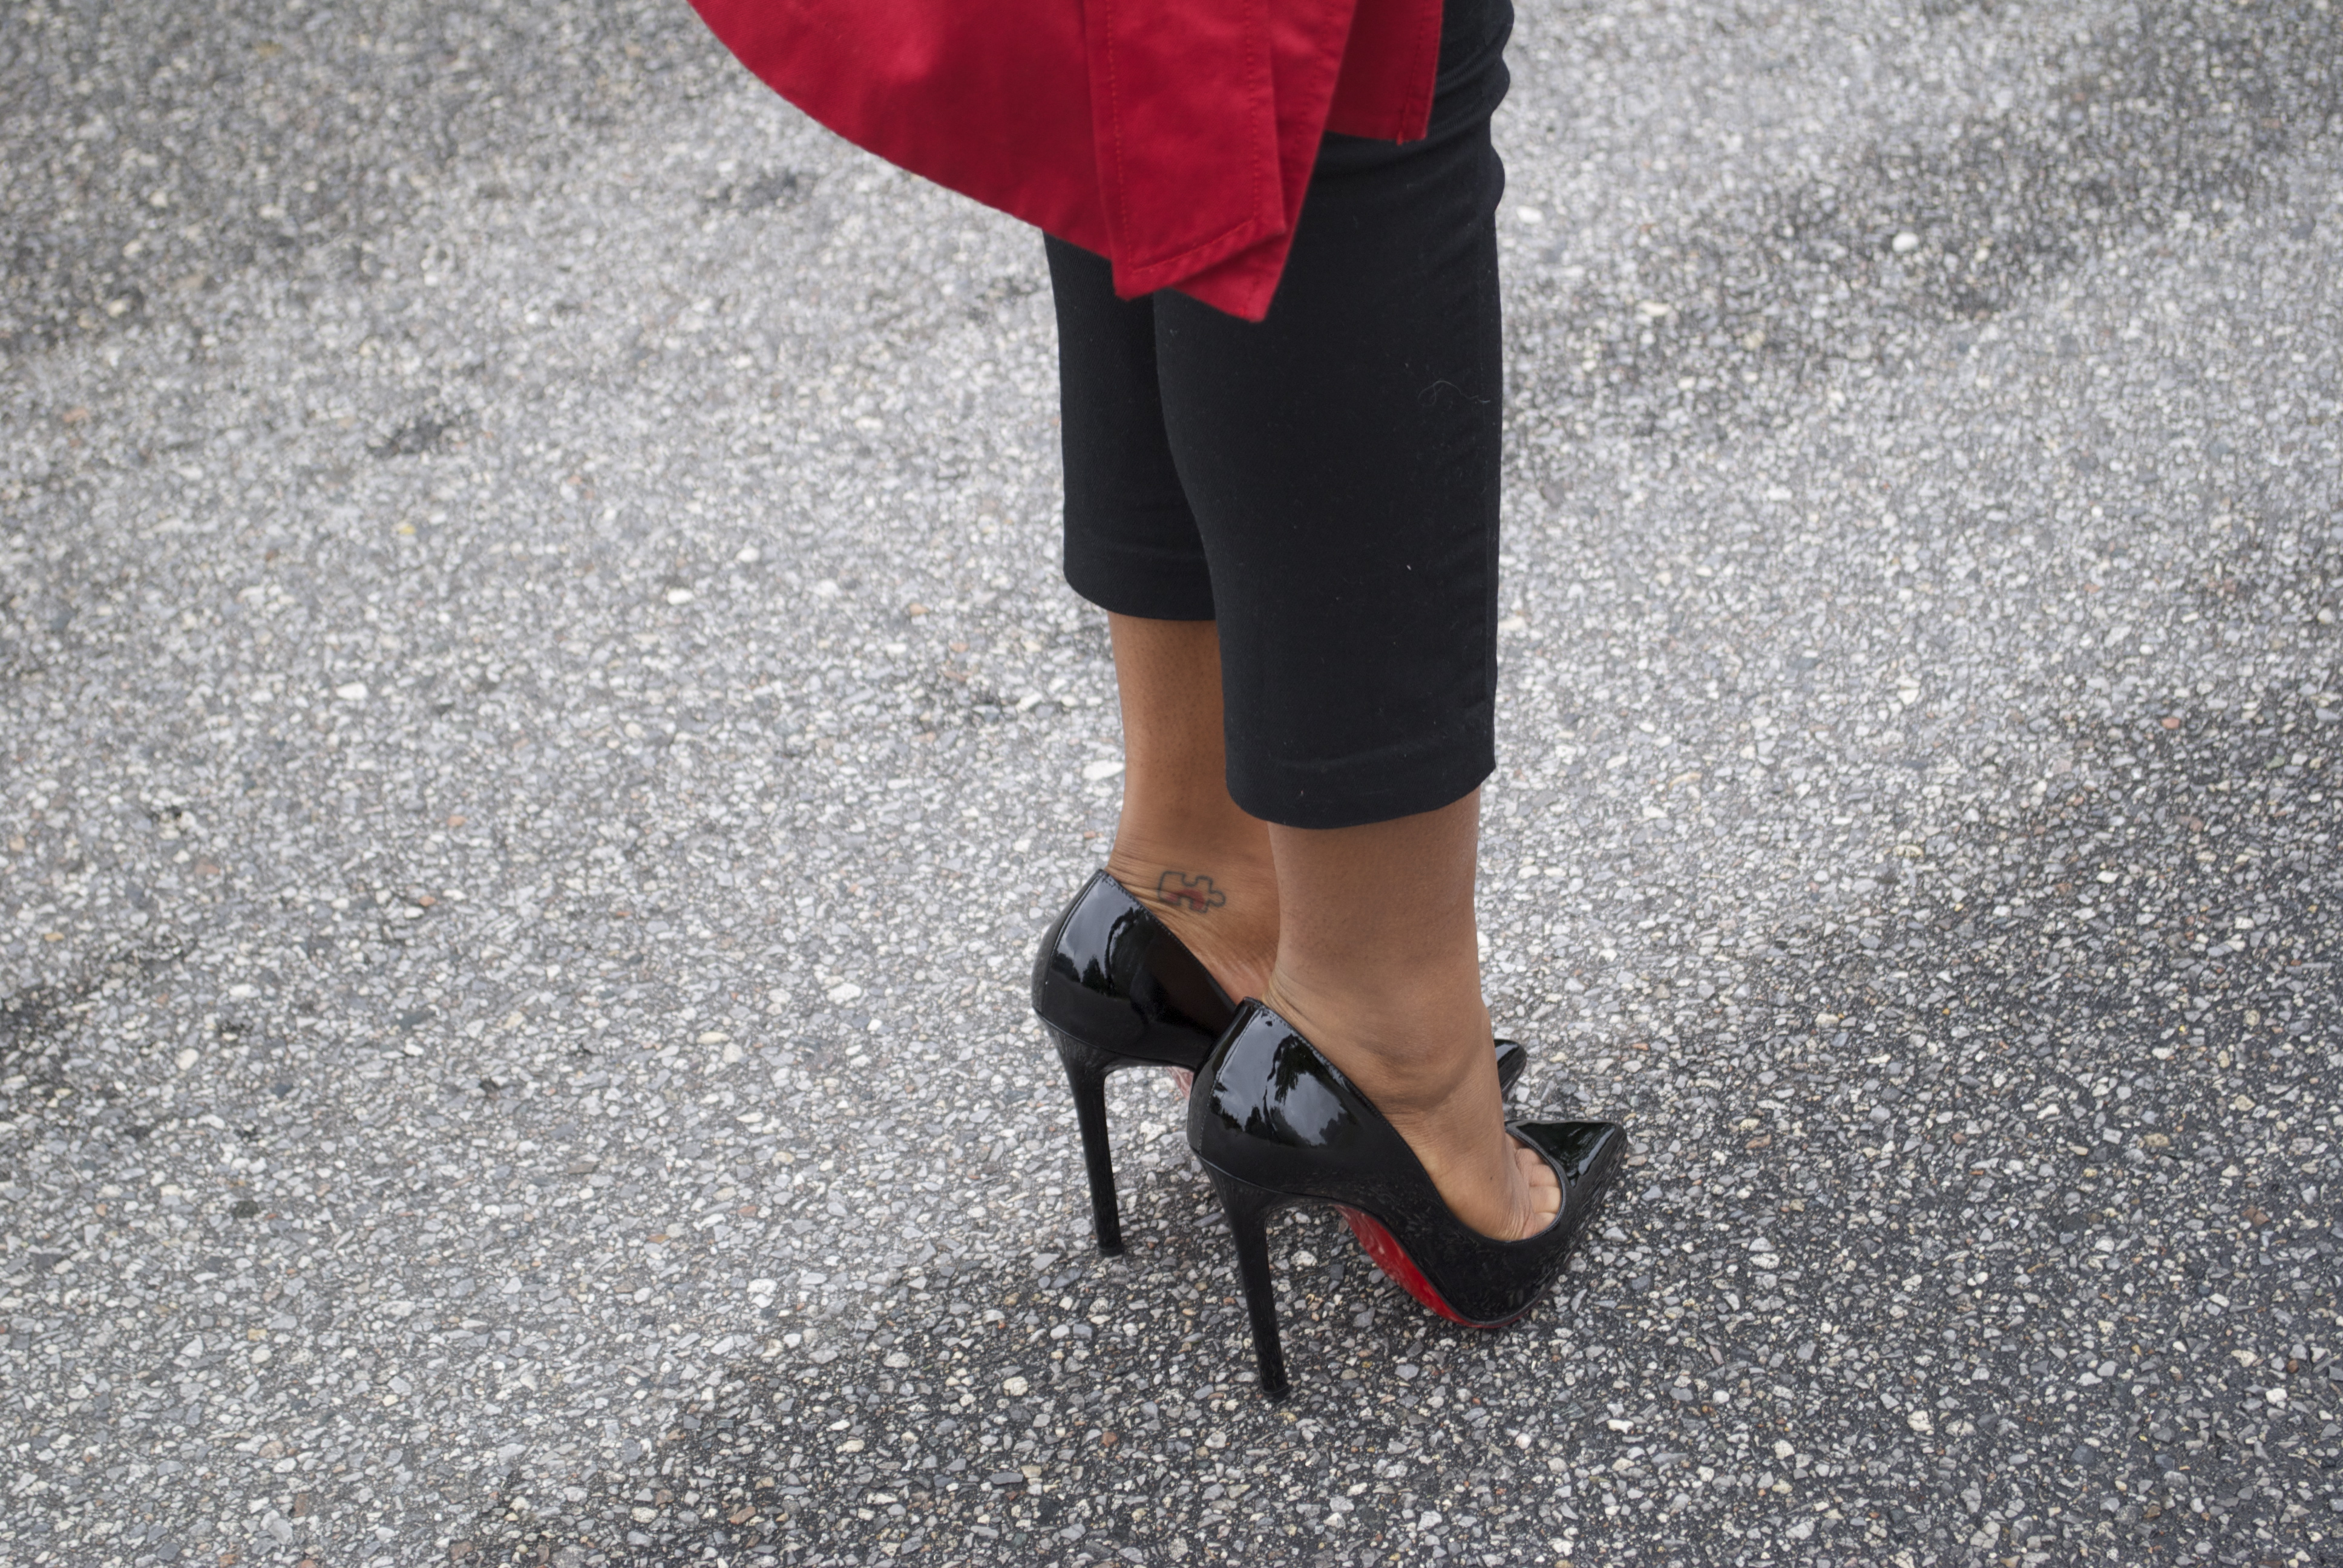 Louboutin_so_kate_designer_shoes_alleygirl_newyork_blogger